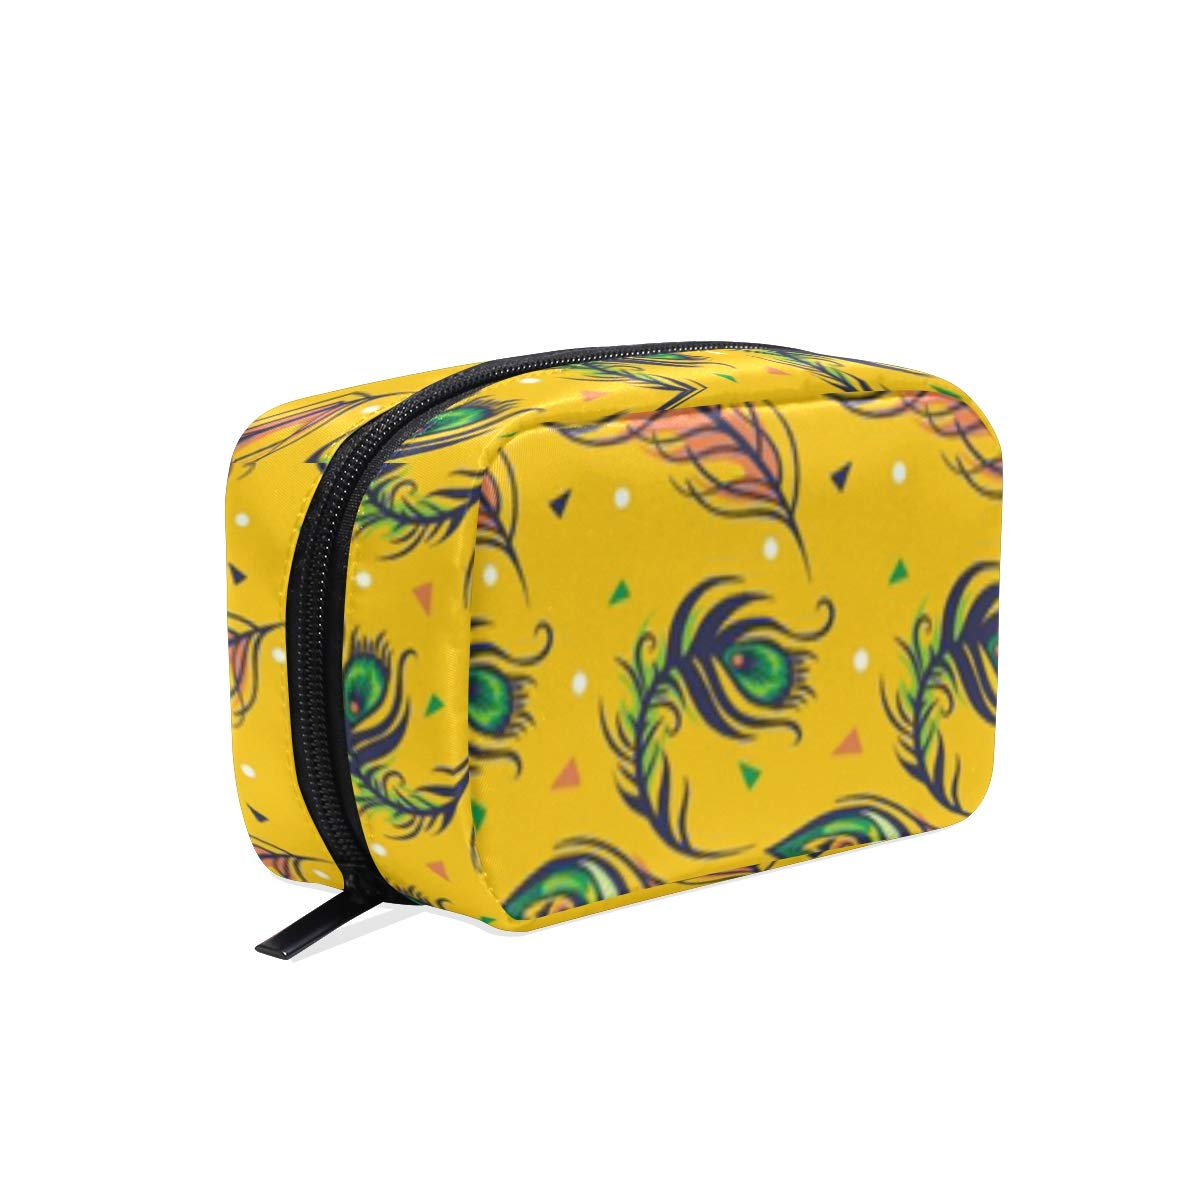 ILEEY Hand Drawn Peacock Feather Pattern Collection Cosmetic Pouch Clutch Makeup Bag Travel Organizer Case Toiletry Pouch for Women